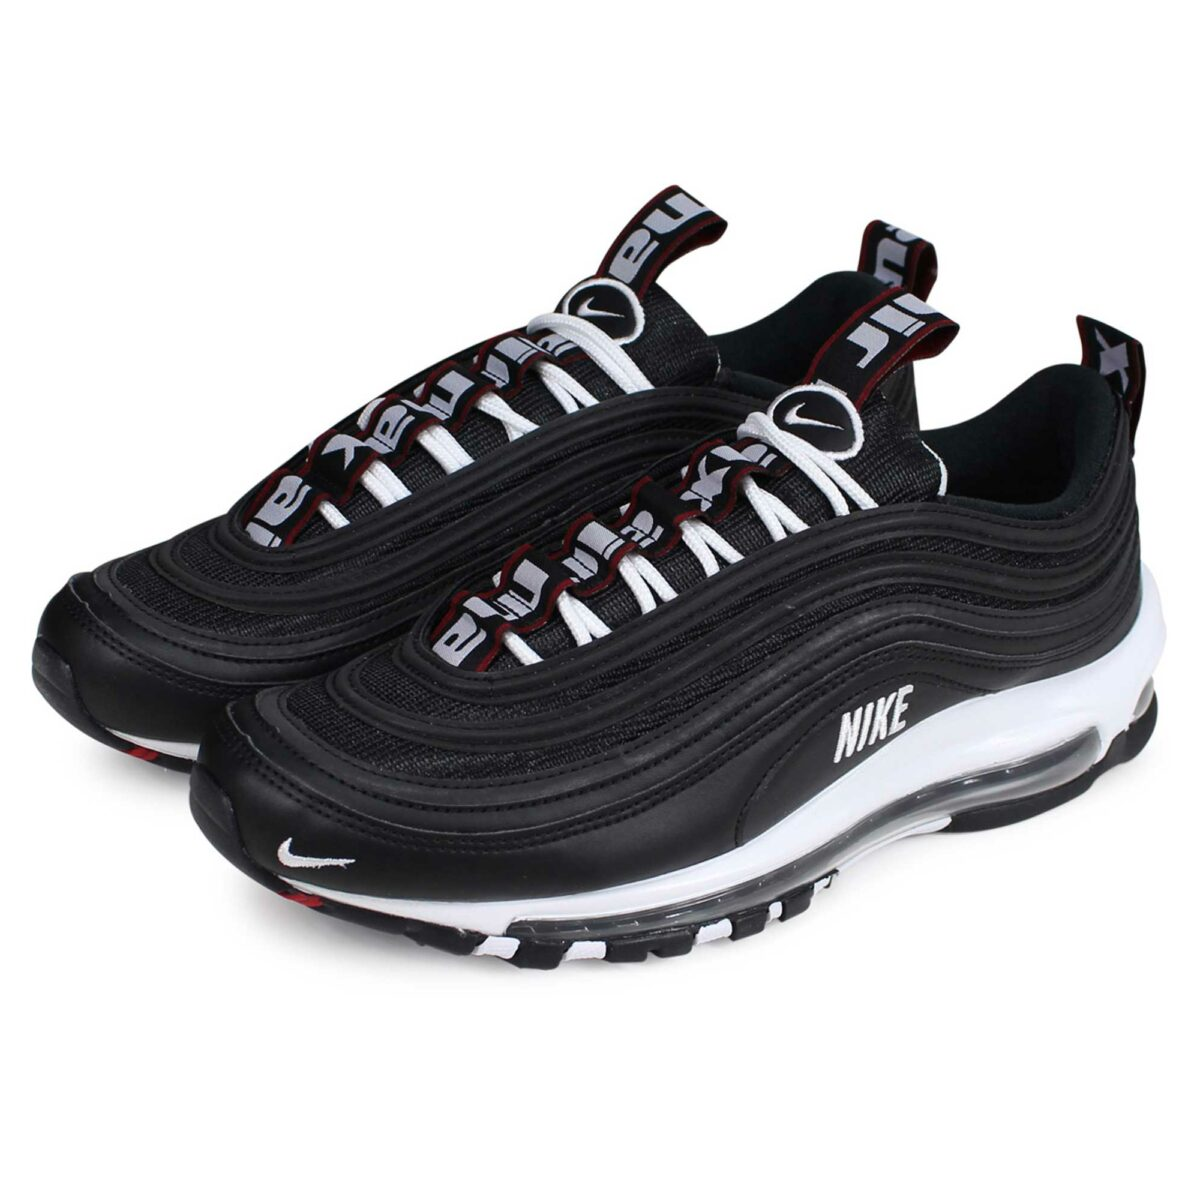 nike air max 97 black leather 312834_008 купить